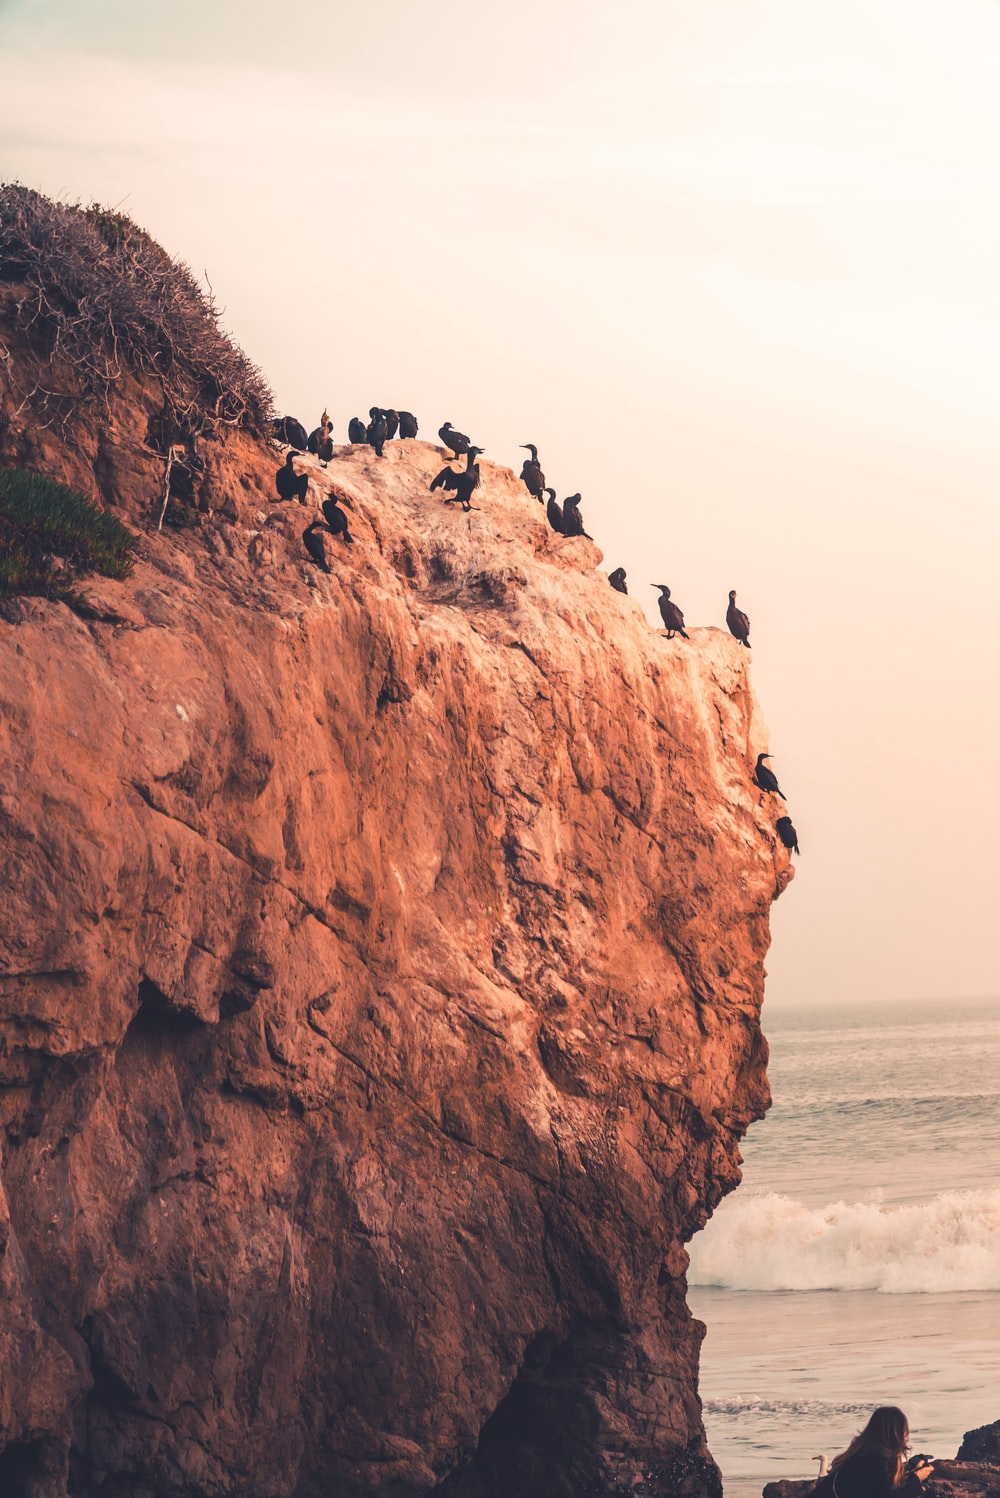 people standing on brown rock formation near sea during daytime